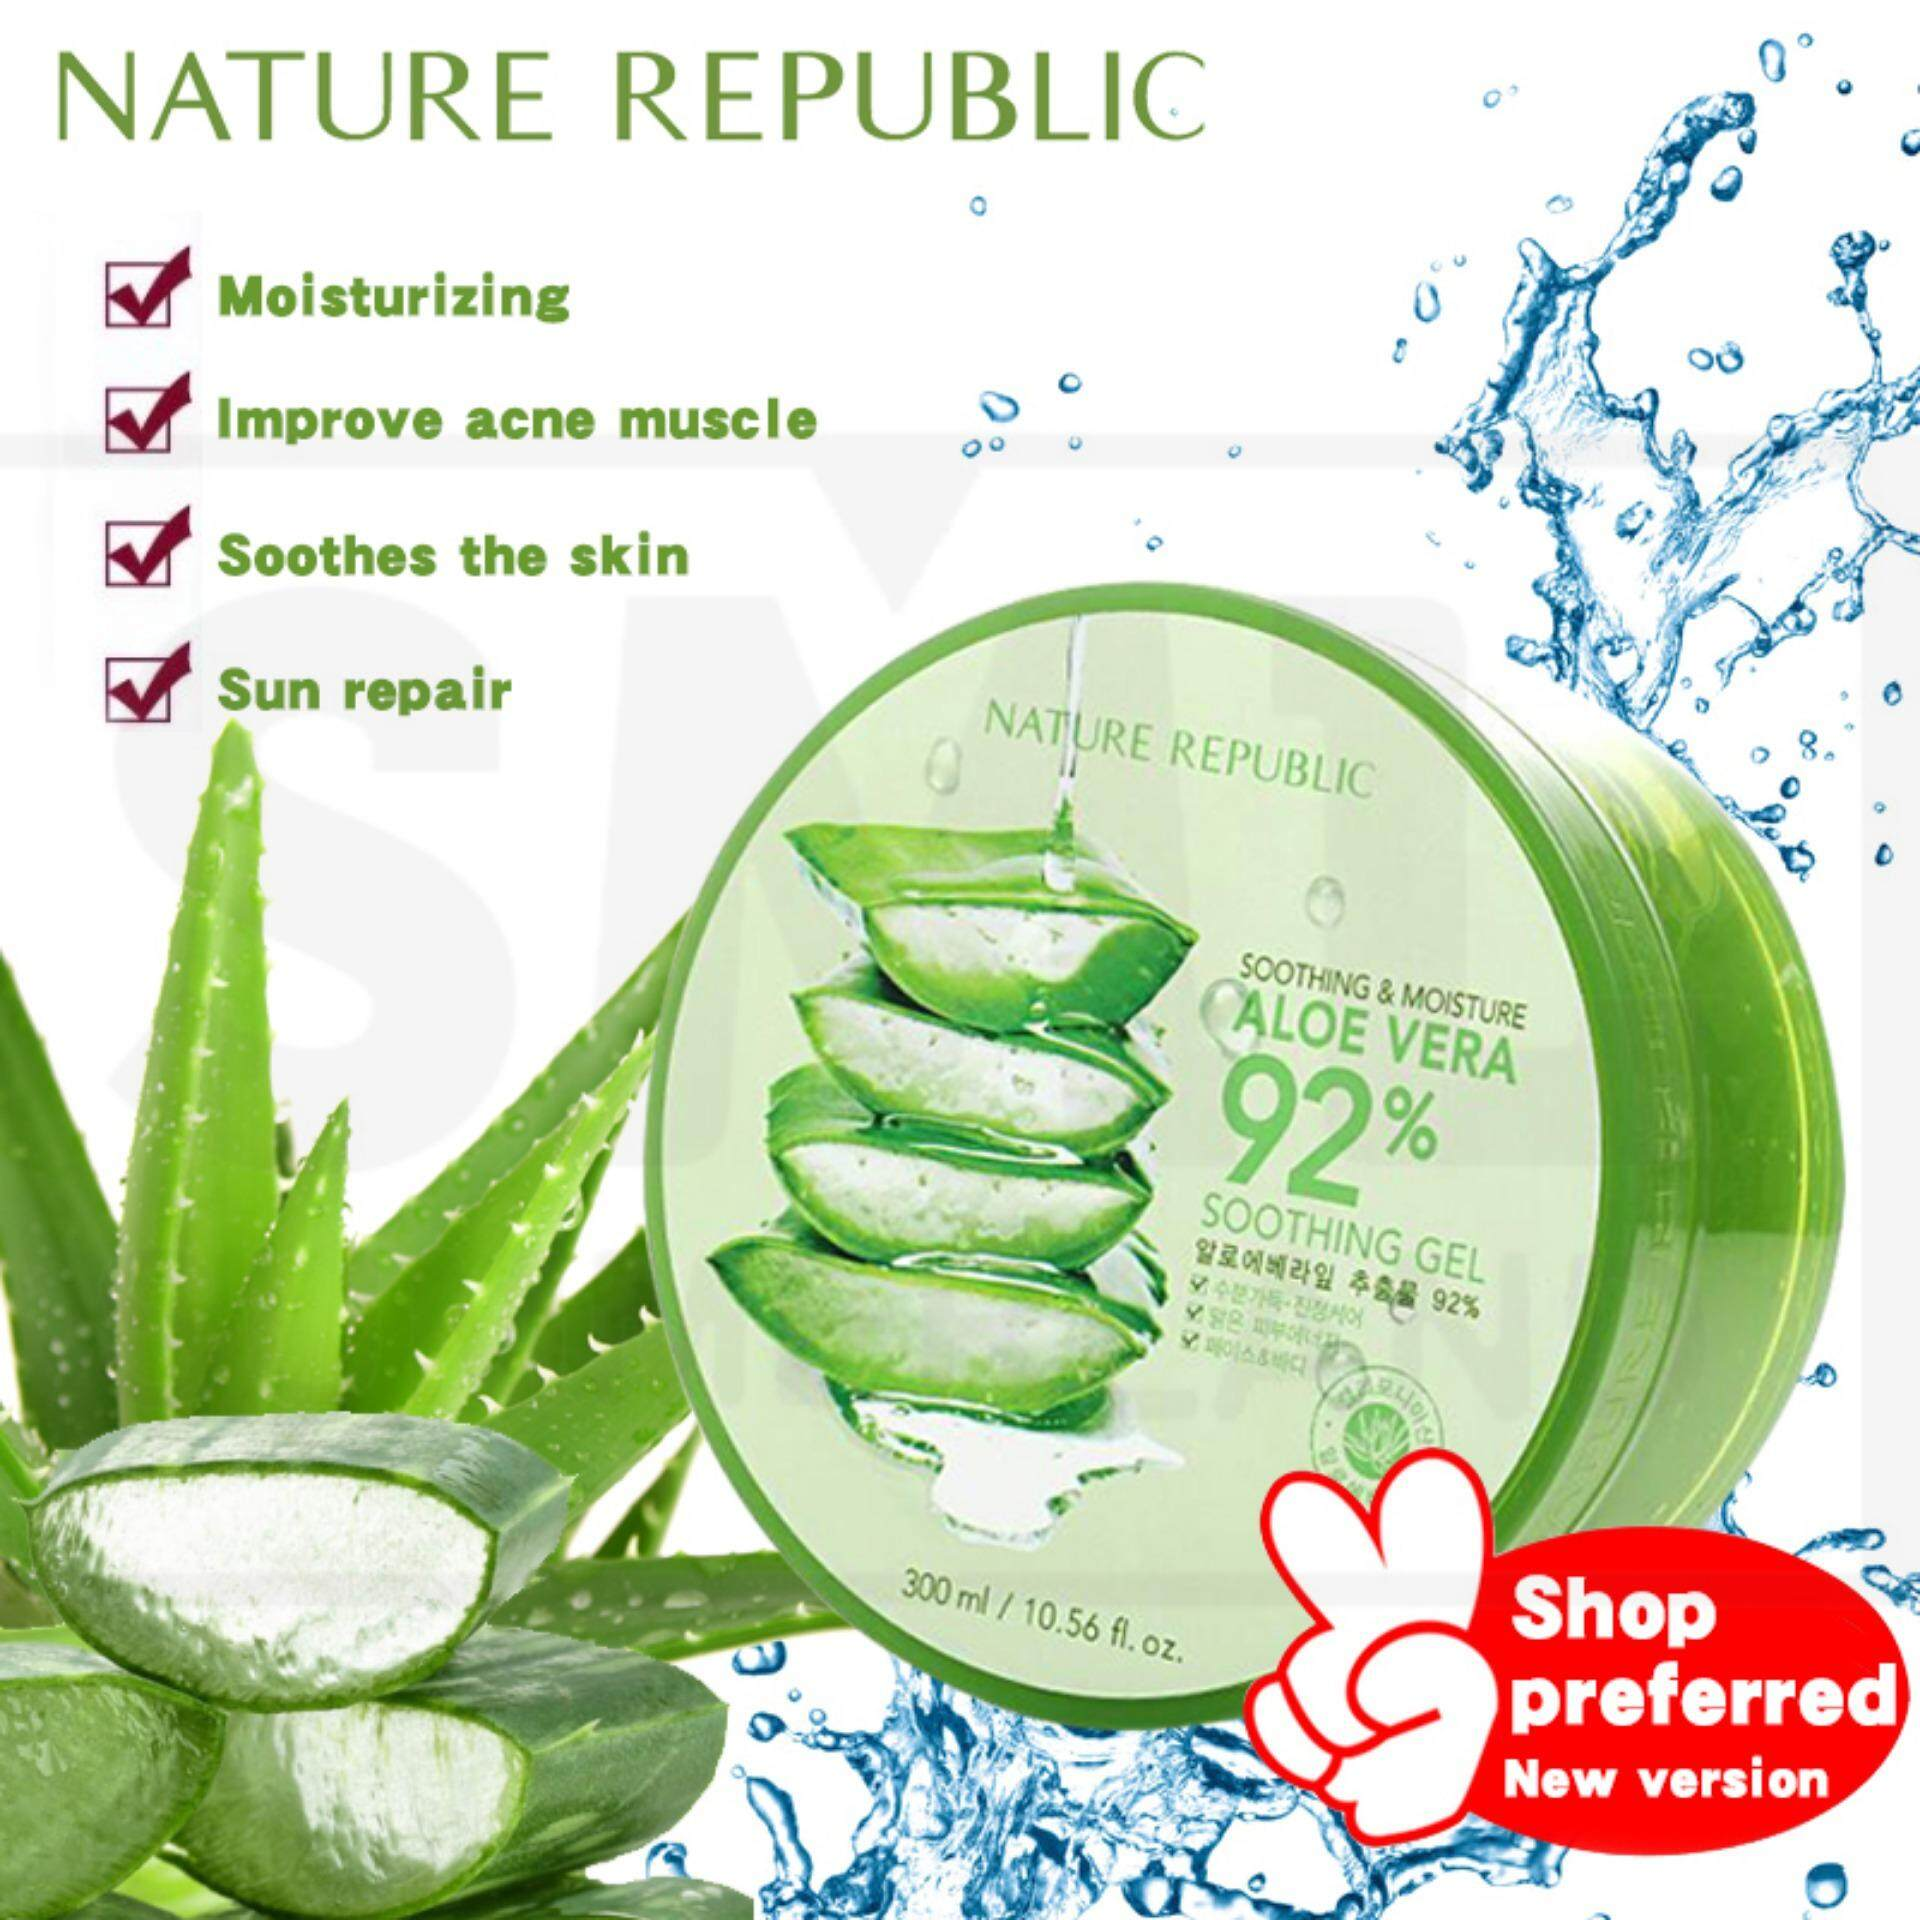 Fitur Nature Republic Aloe Vera Soothing Gel 92 Original Korea Masker And Moisture 300ml